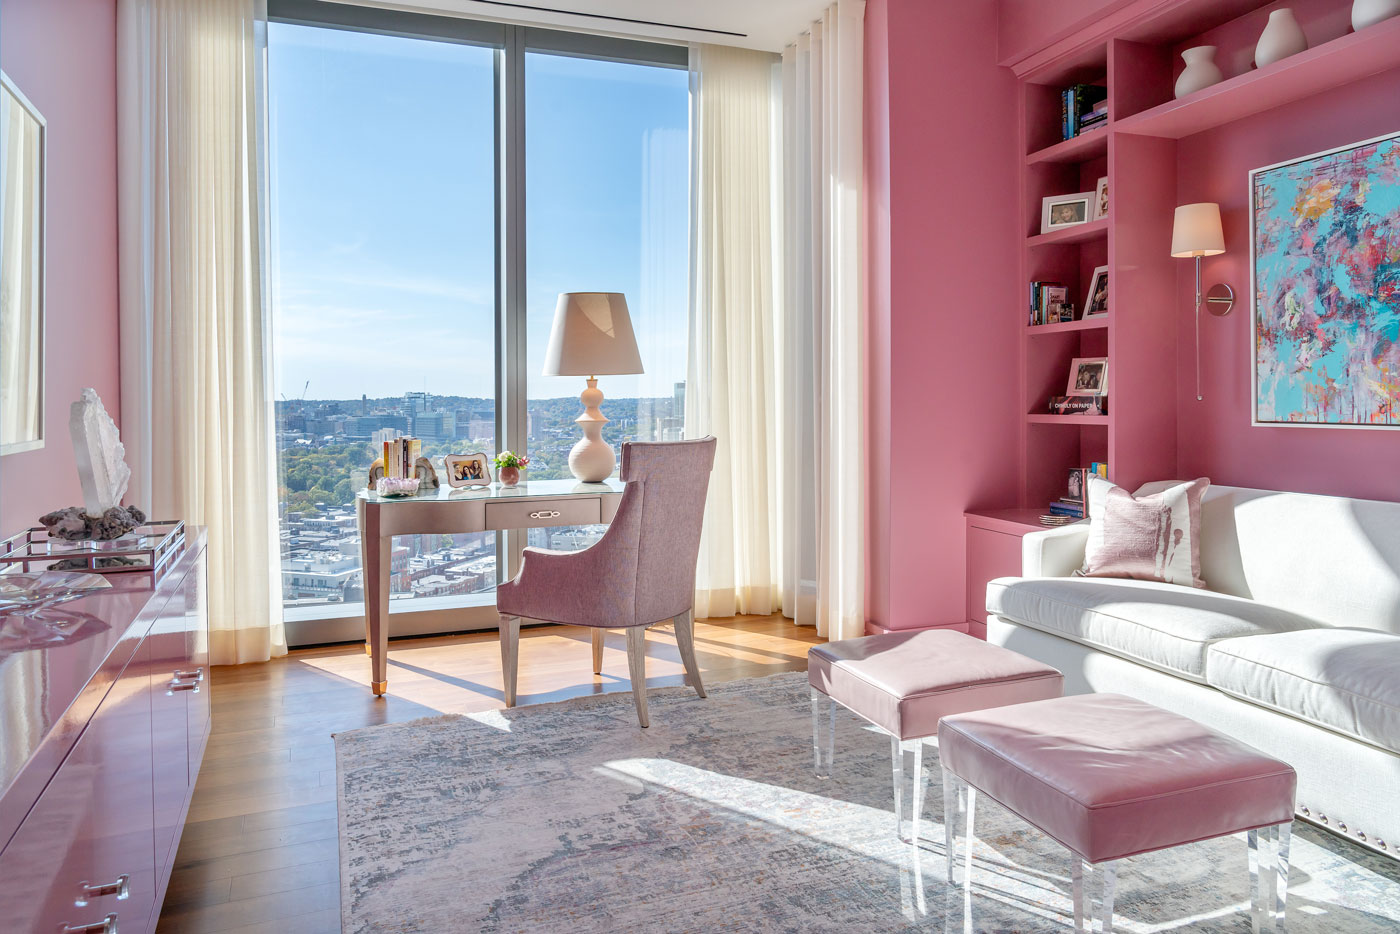 An upscale pink bedroom design by Michael Carter of Carter & Company